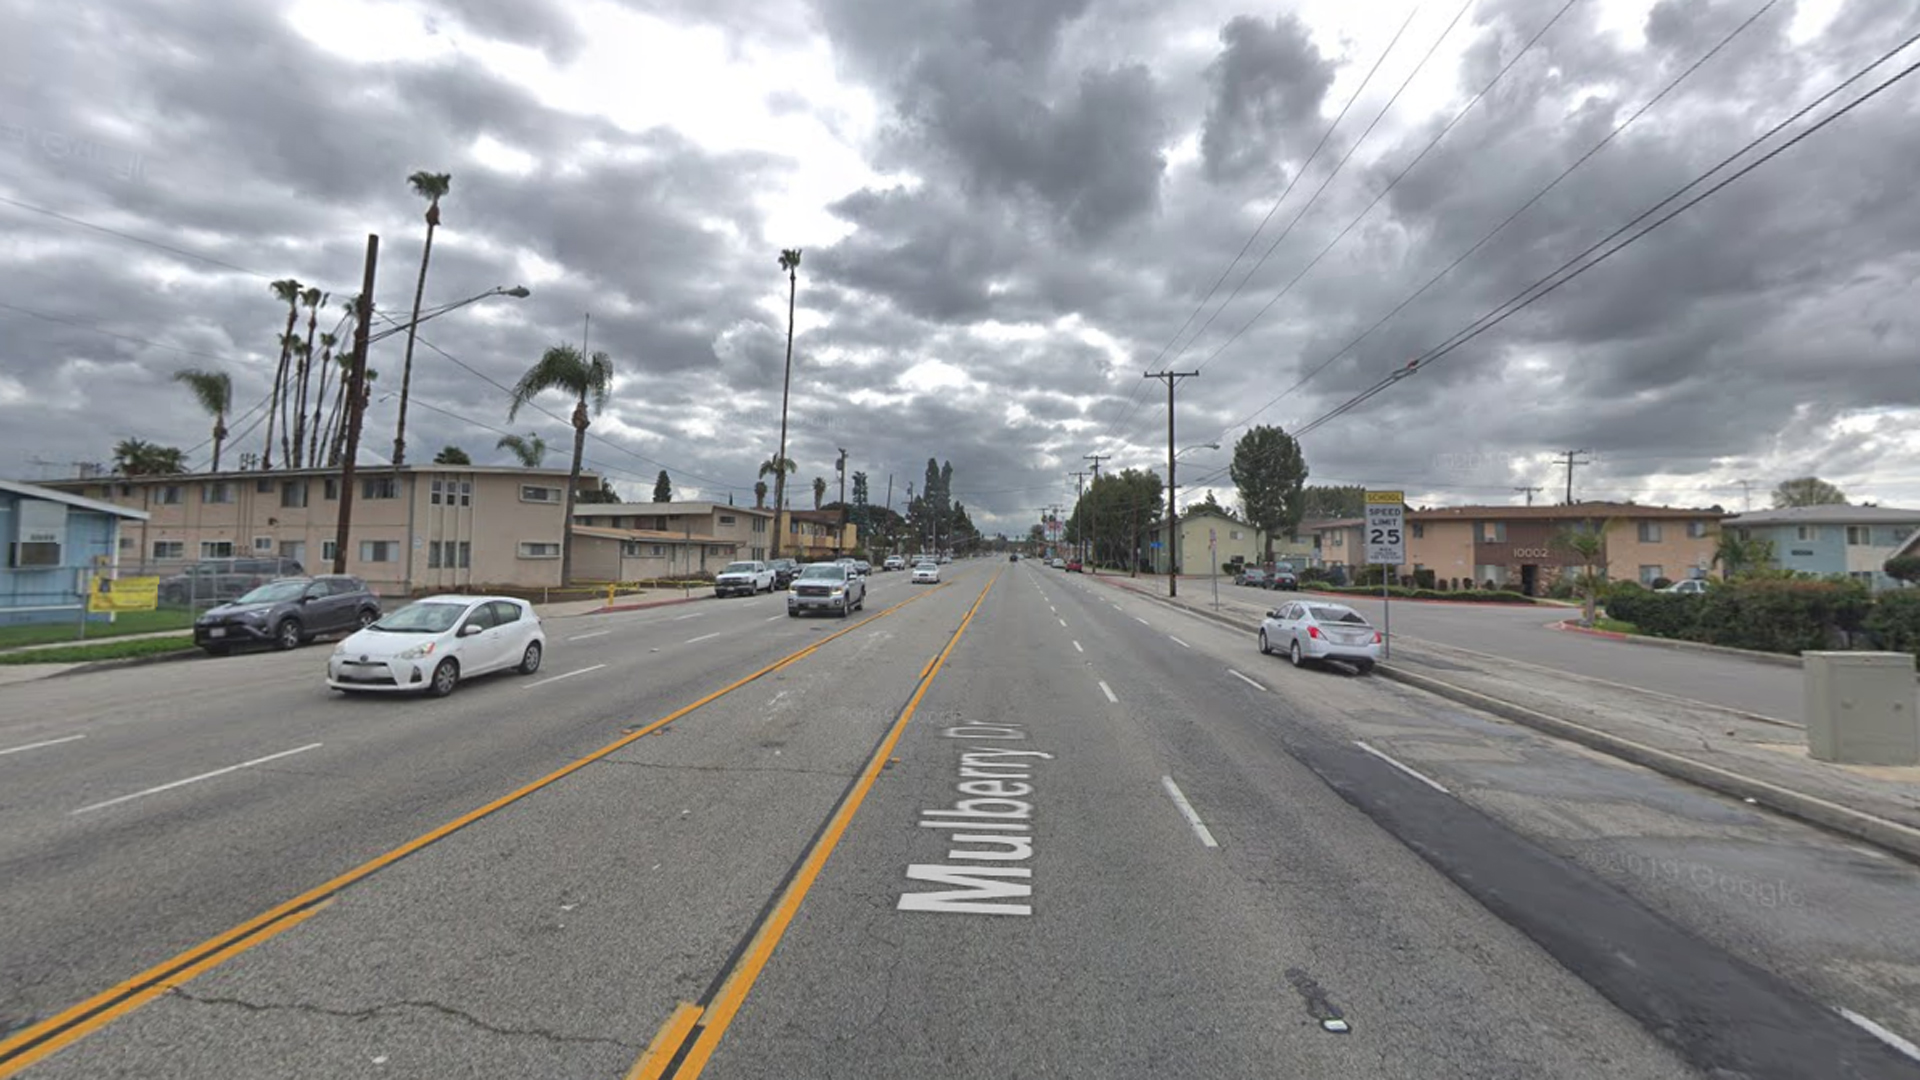 The 14100 block of Mulberry Drive in South Whittier, as viewed in a Google Street View image in March of 2019.